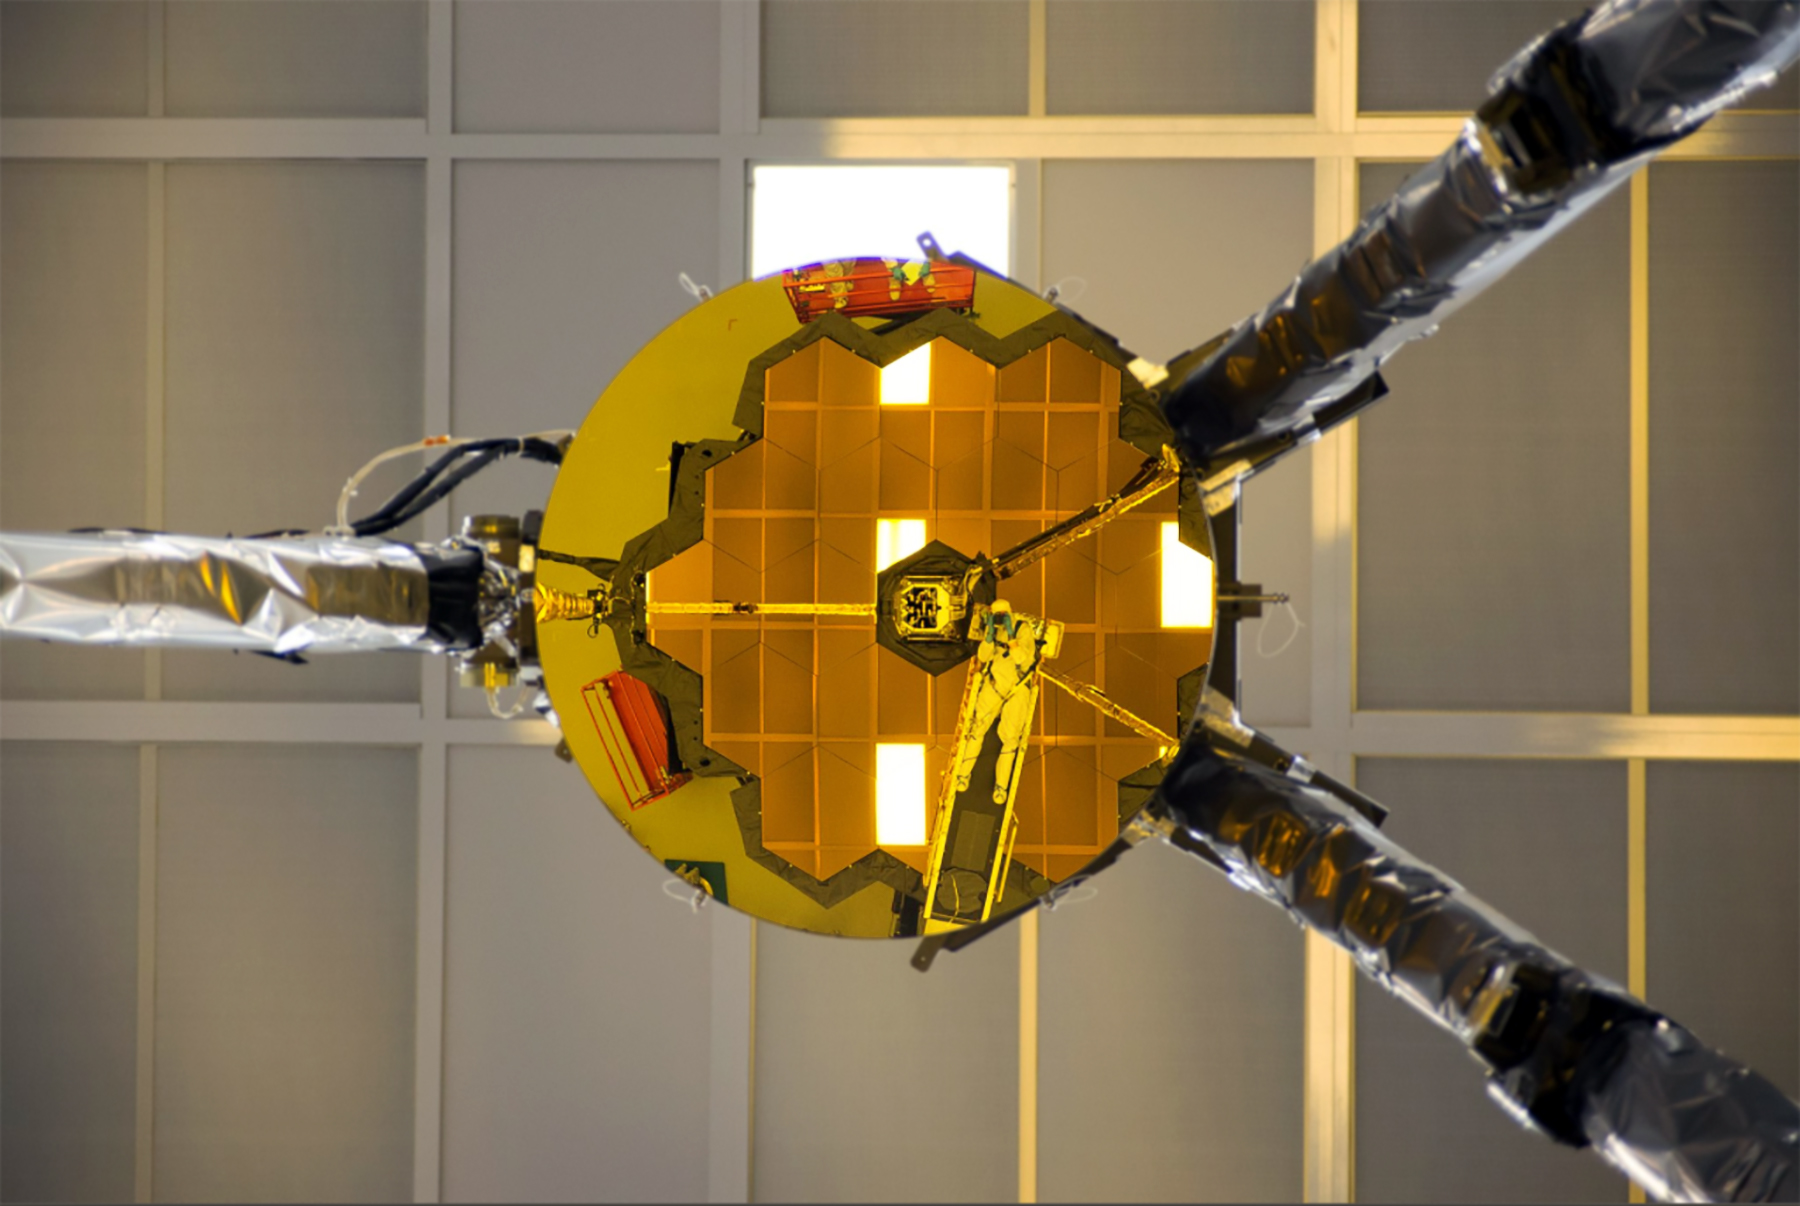 Optical engineer Larkin Carey is reflected in the James Webb Space Telescope's secondary mirror, as he photographs the line of sight for hardware used during an important test of the telescope's optics.